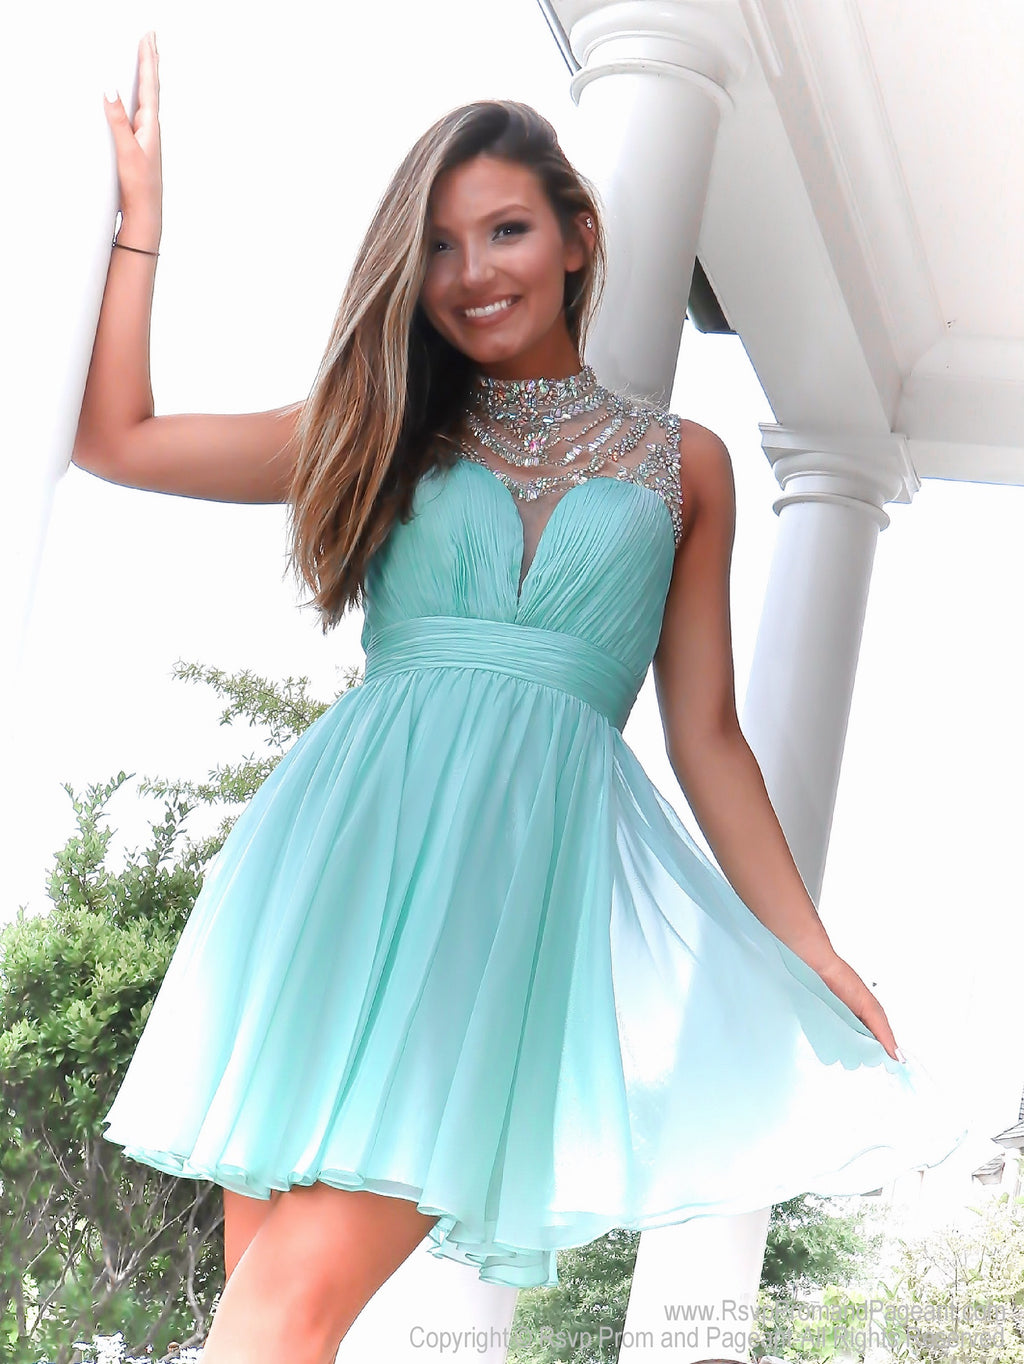 Pretty brunette in Adorable Mint High Illusioned Neckline Homecoming Dress at Rsvp Prom and Pageant, best prom dress store, Atlanta, Georgia